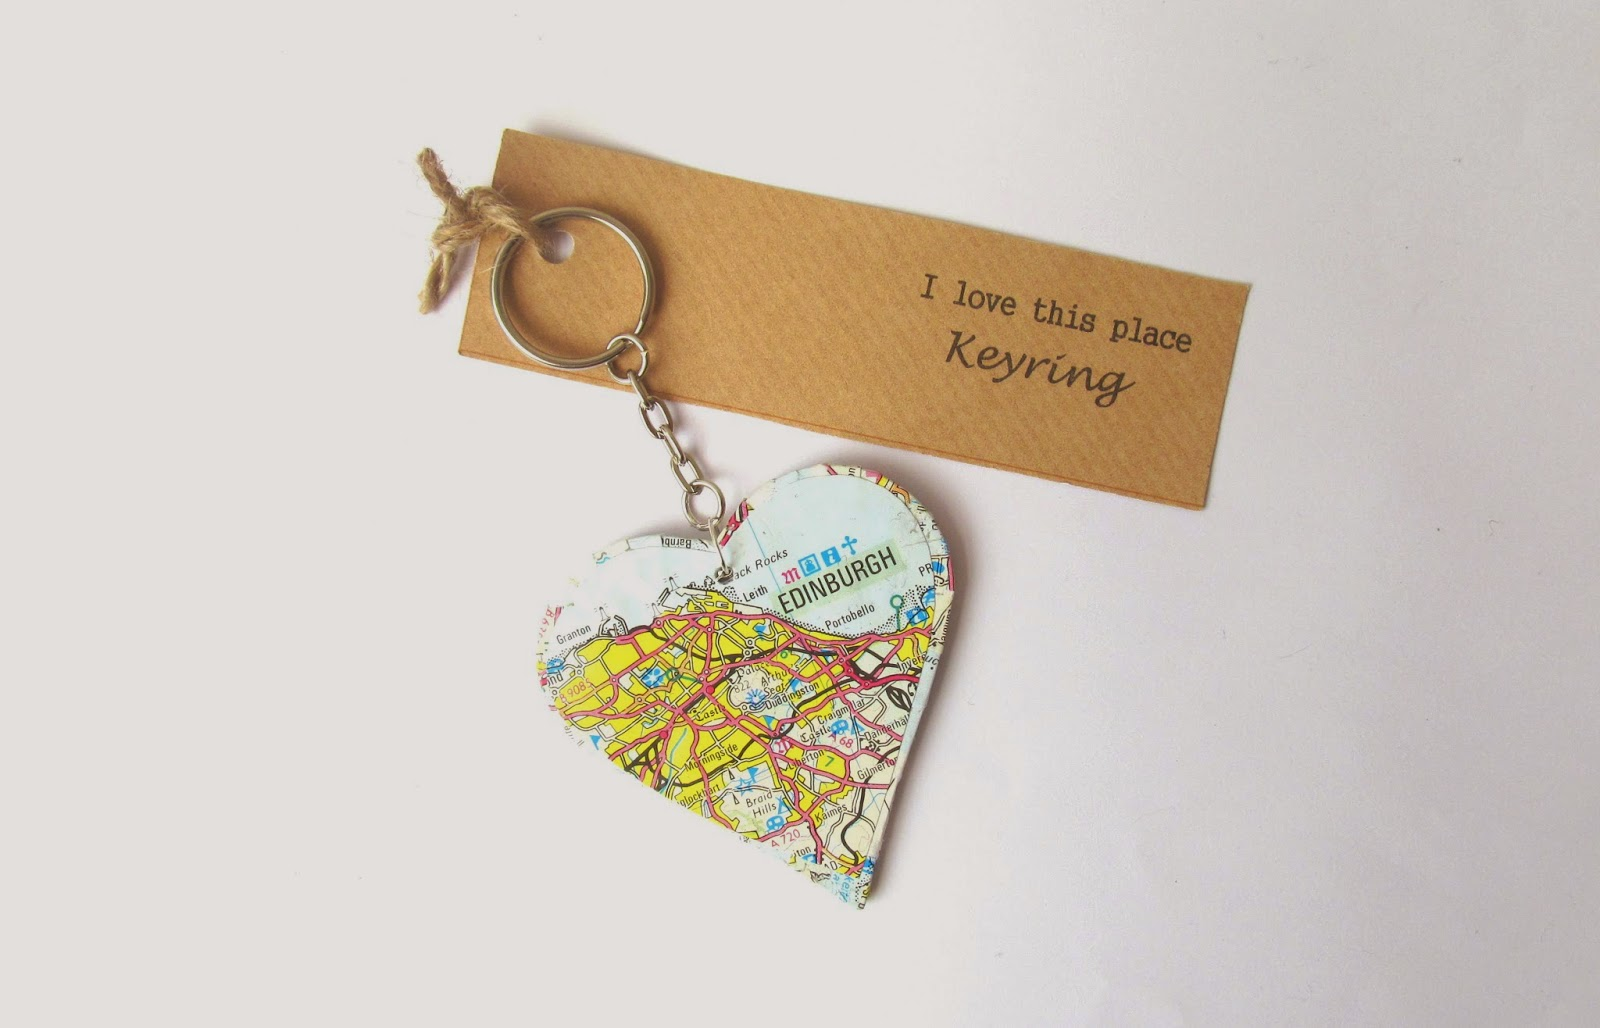 Pink flamingo handcrafting made with mapsa new collection sheffield range which are made out of vintage maps of sheffield ive now made keyrings bookmarks and cards made with maps from around the world gumiabroncs Gallery